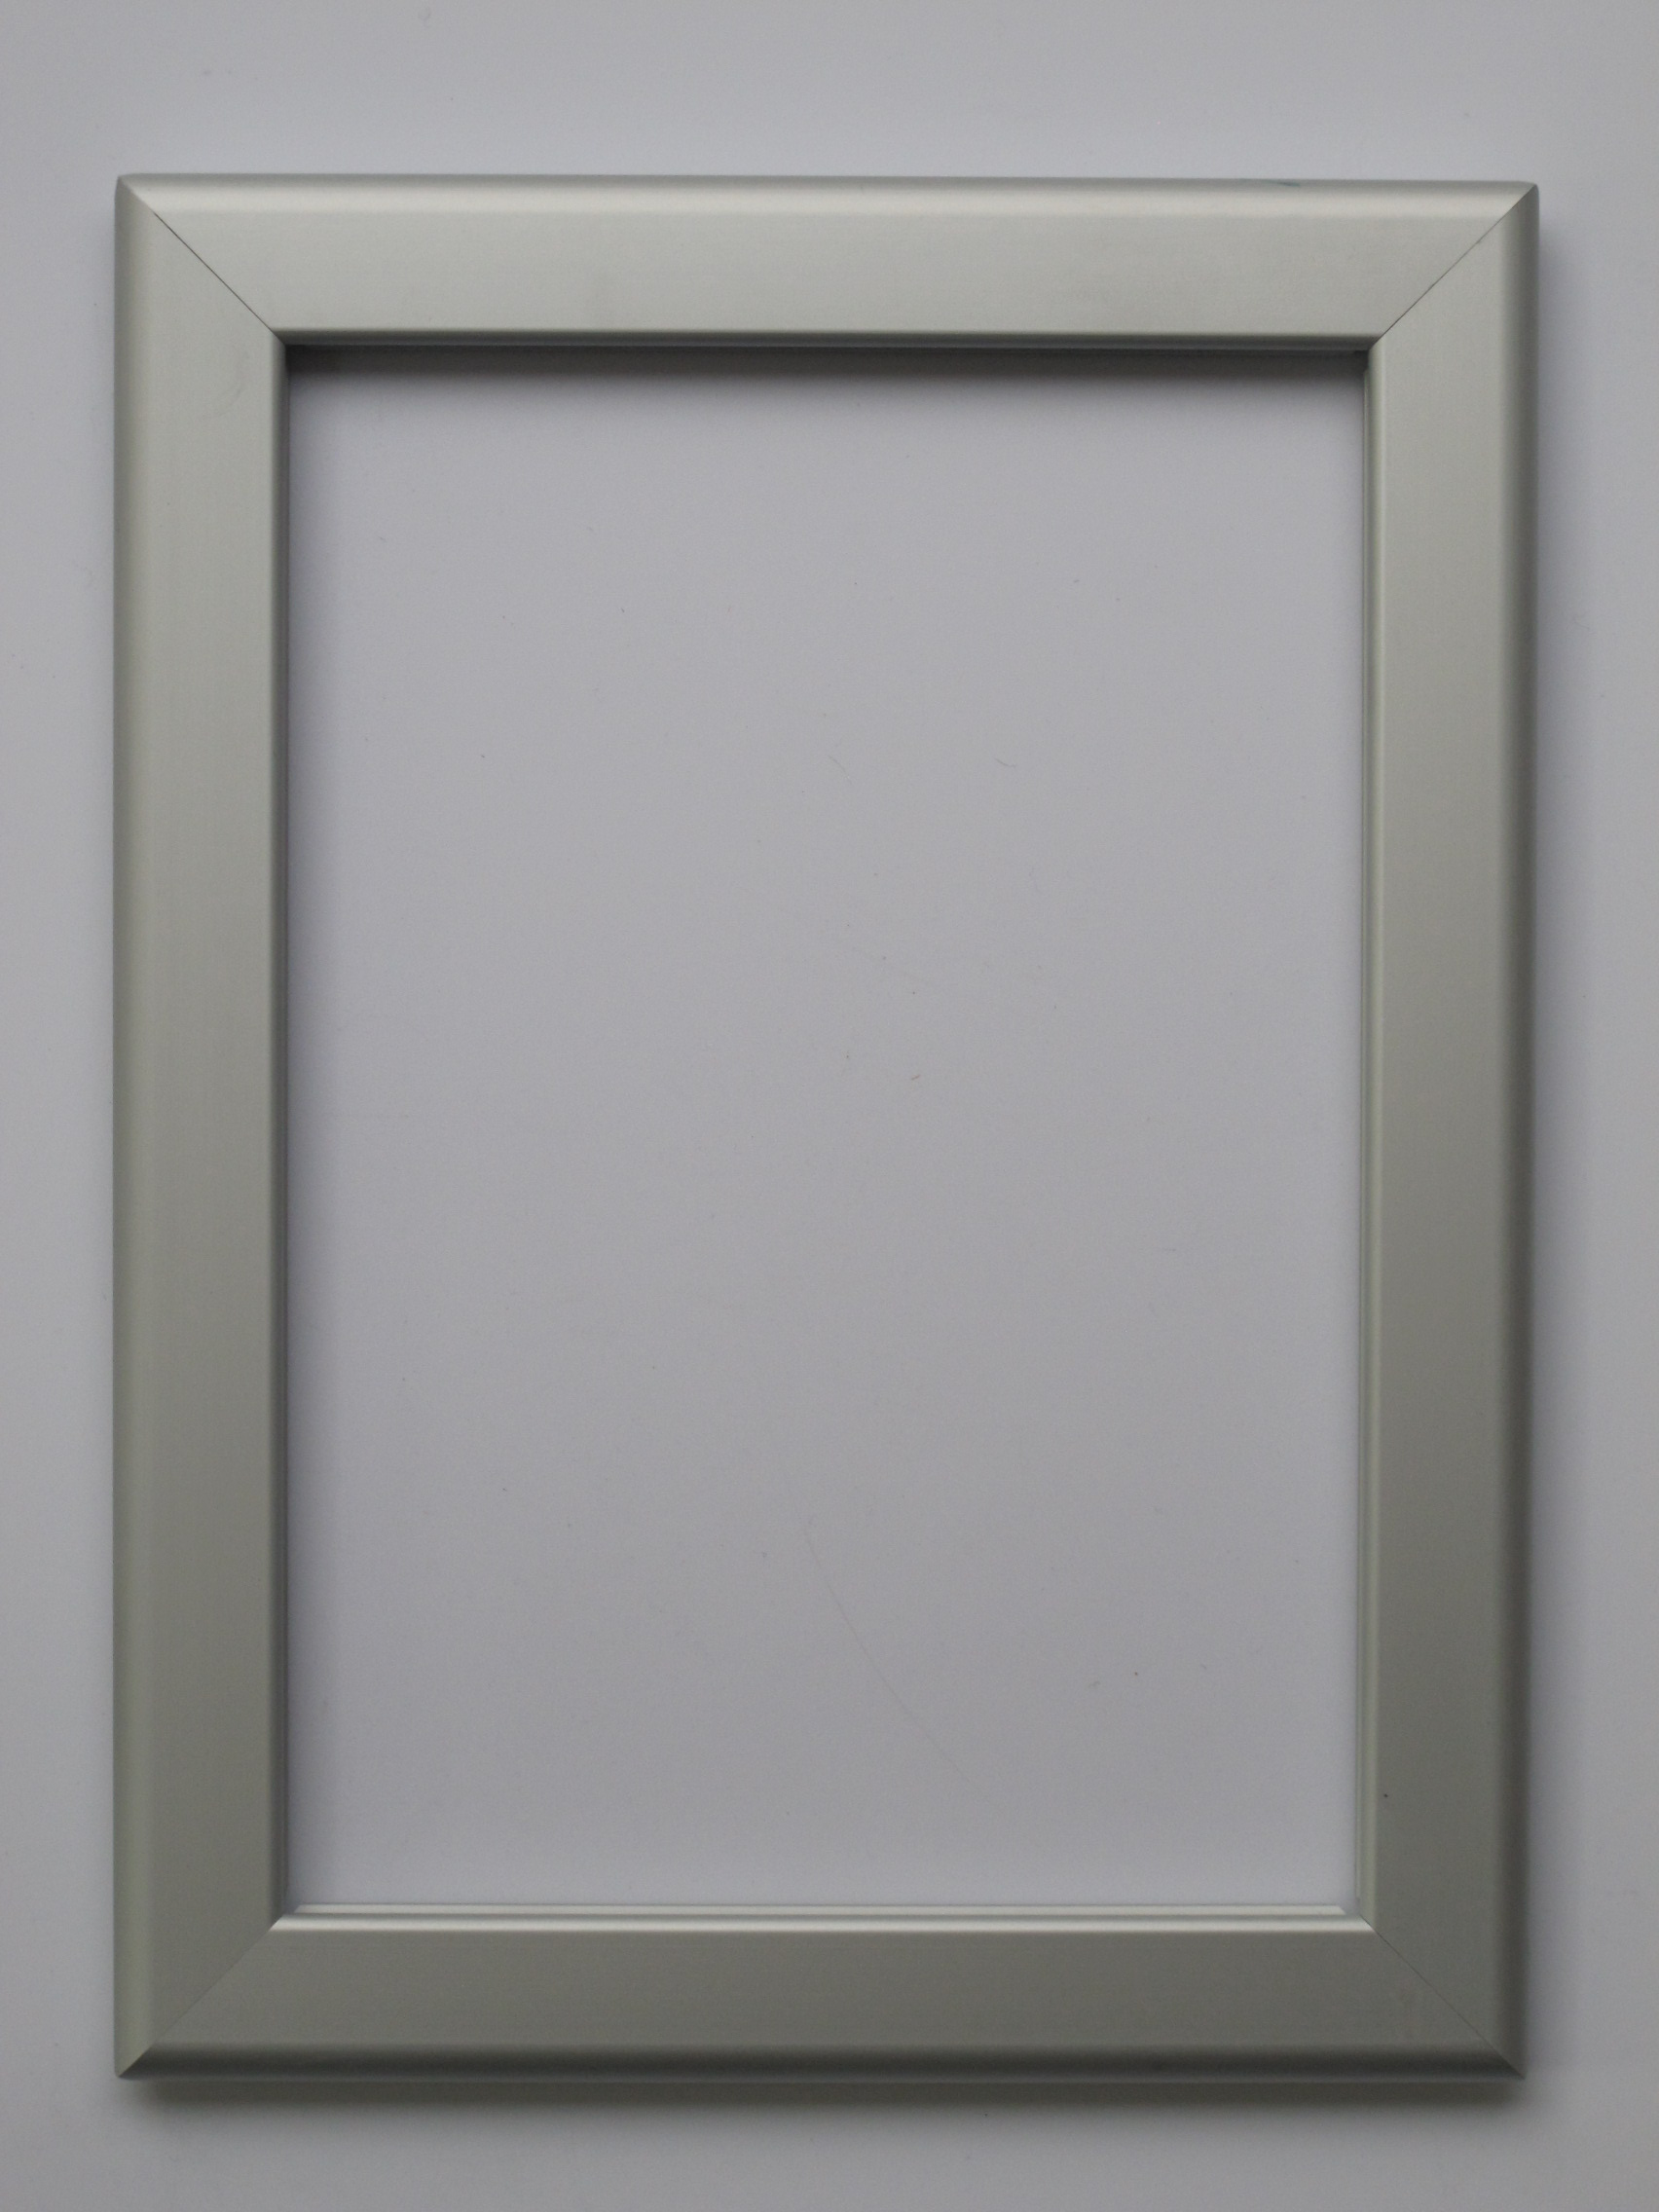 32mm large snap frames poster frames stronger frames for for Large a frame